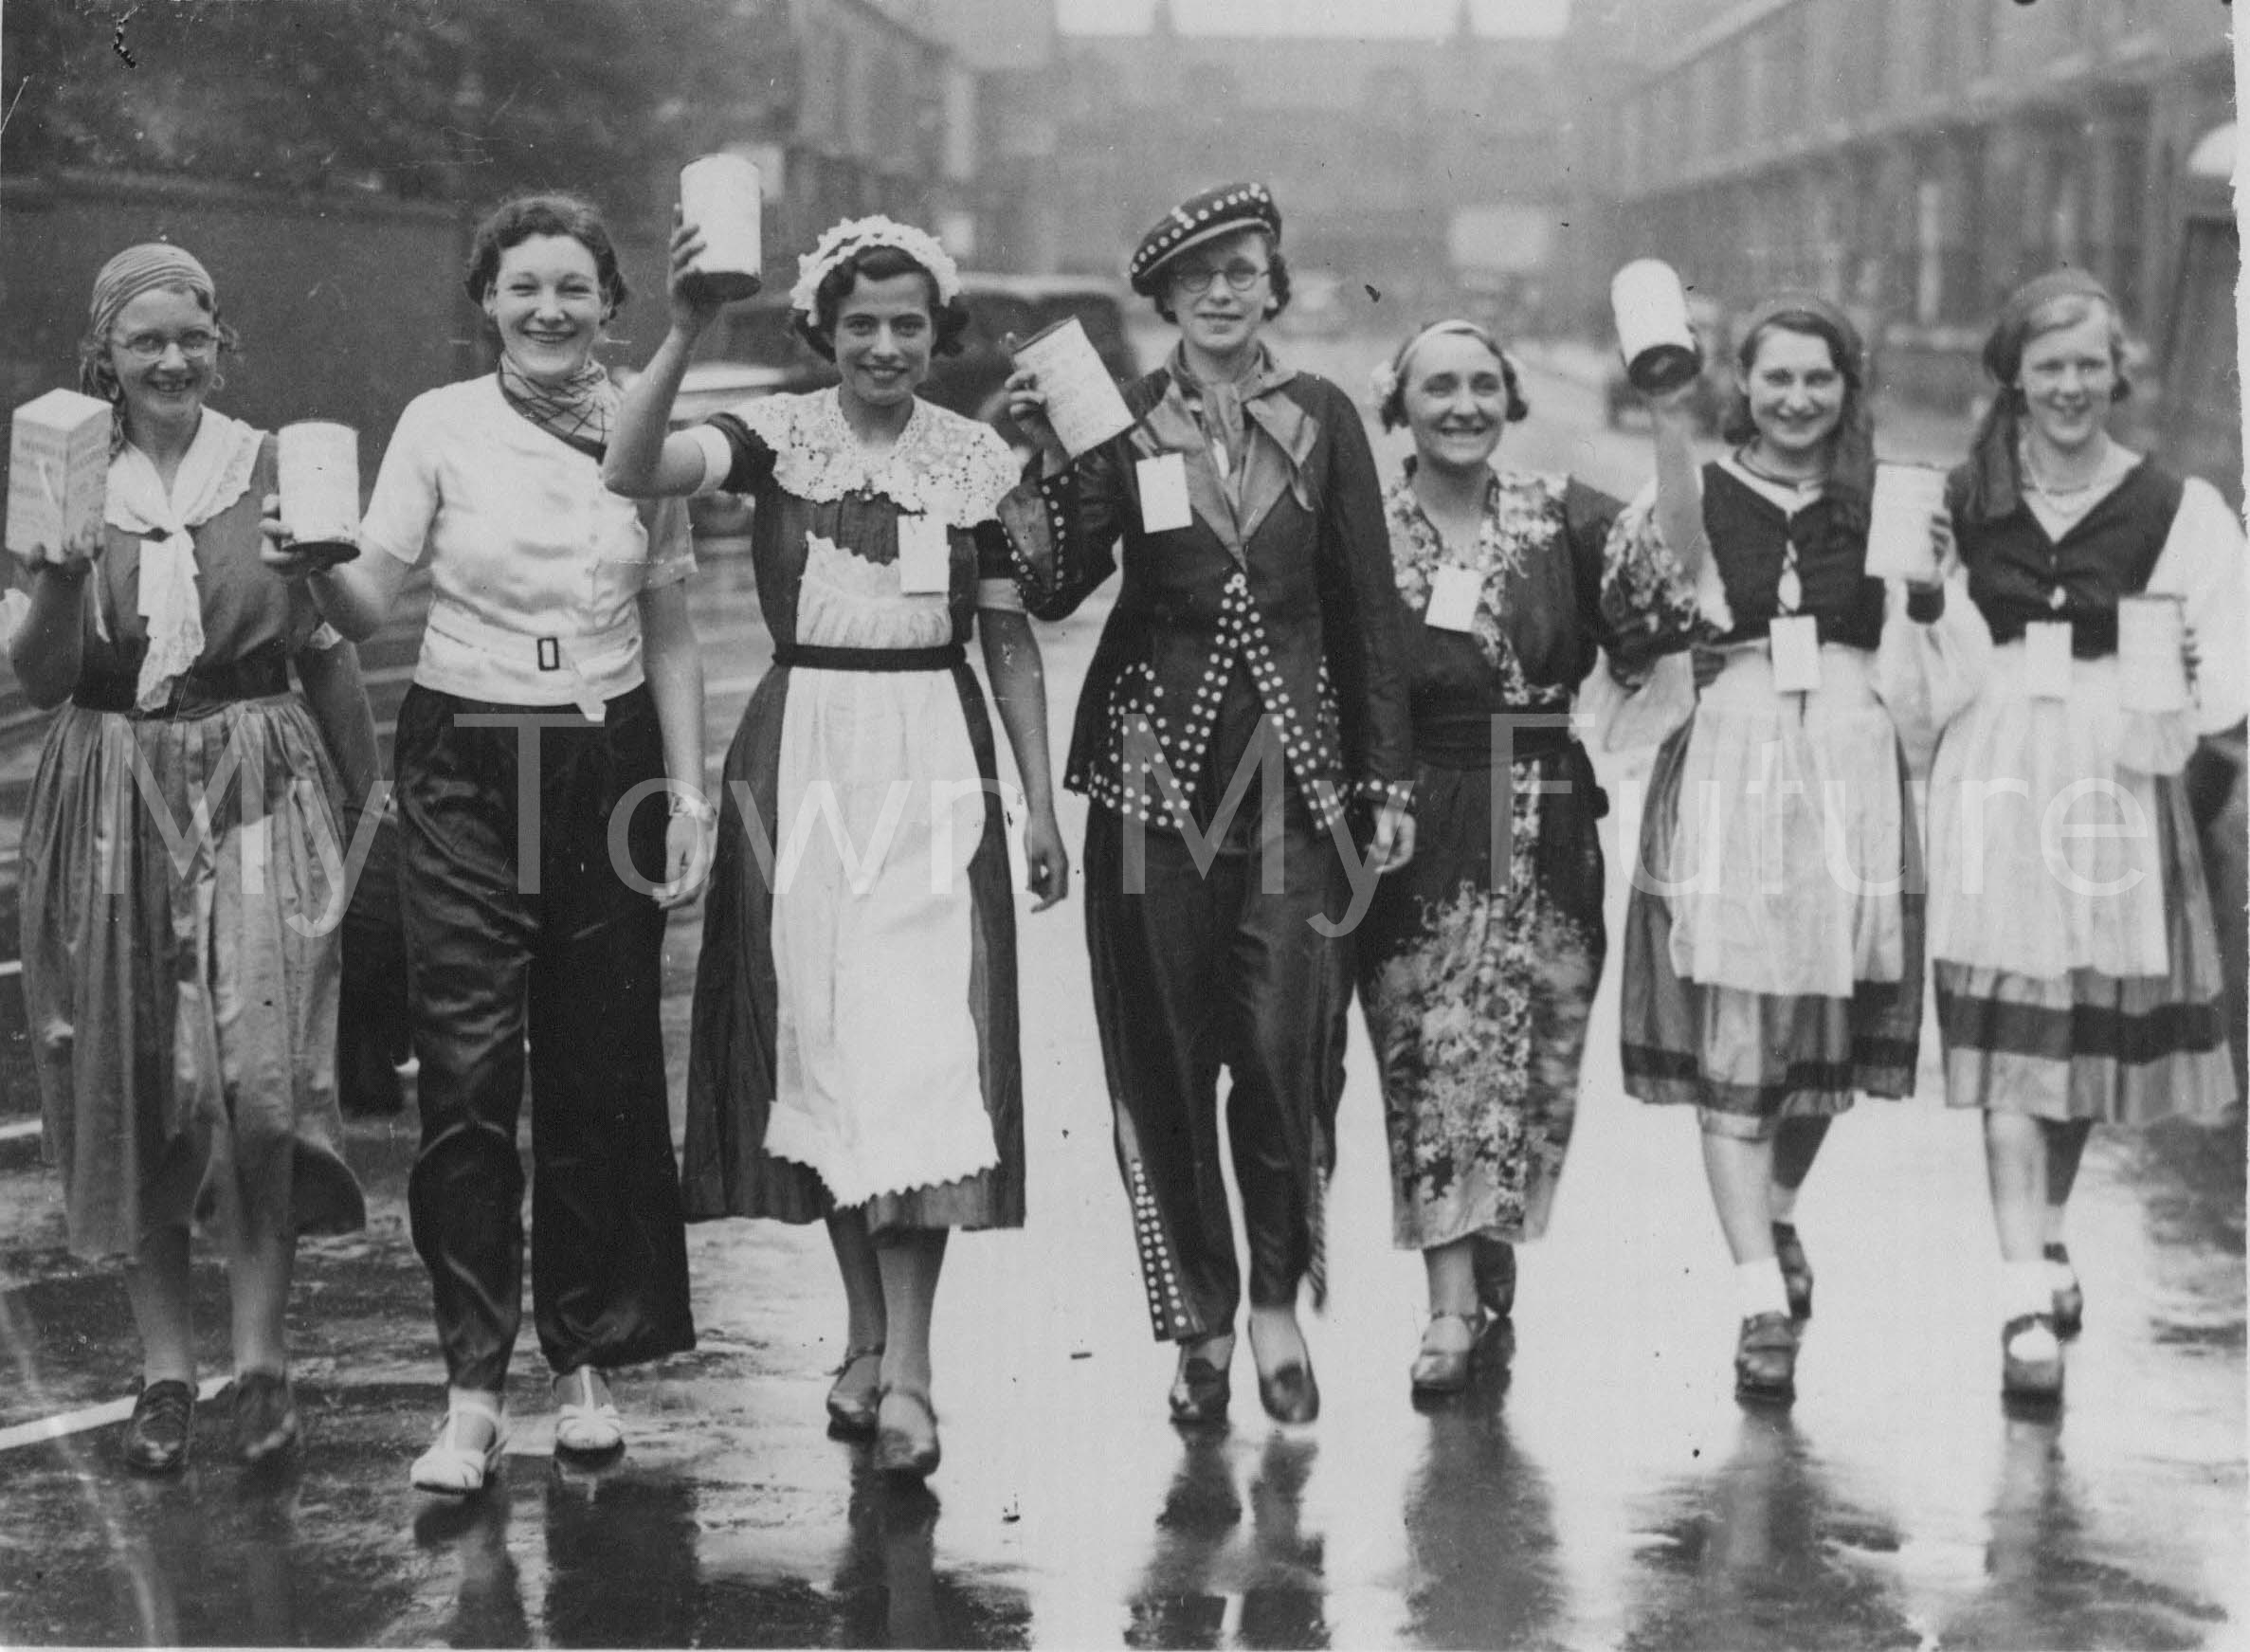 Middlesbrough Deanery Pageant 1937